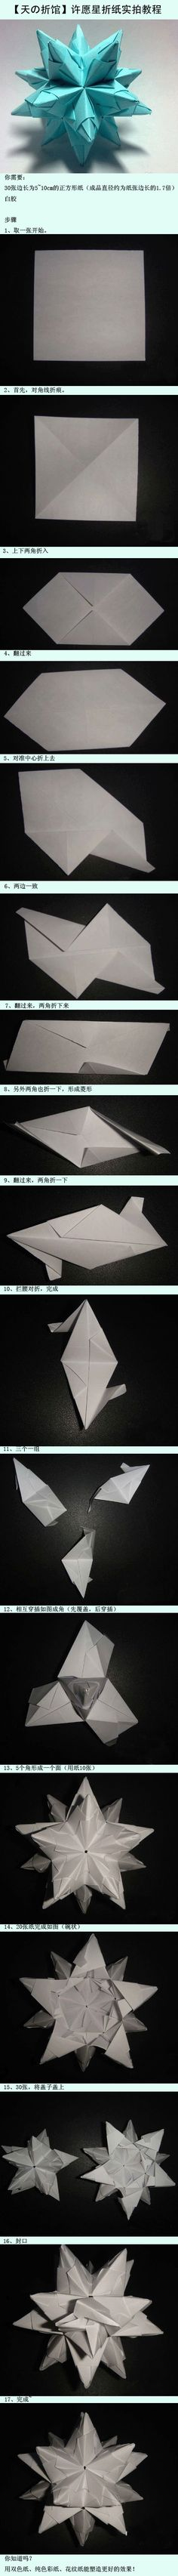 68 Best Origami Japanese Arts Crafts Images Paper Crafting Folding Diagram 1 Of 3 Scottish Terrier Dog Money Want To Make This D